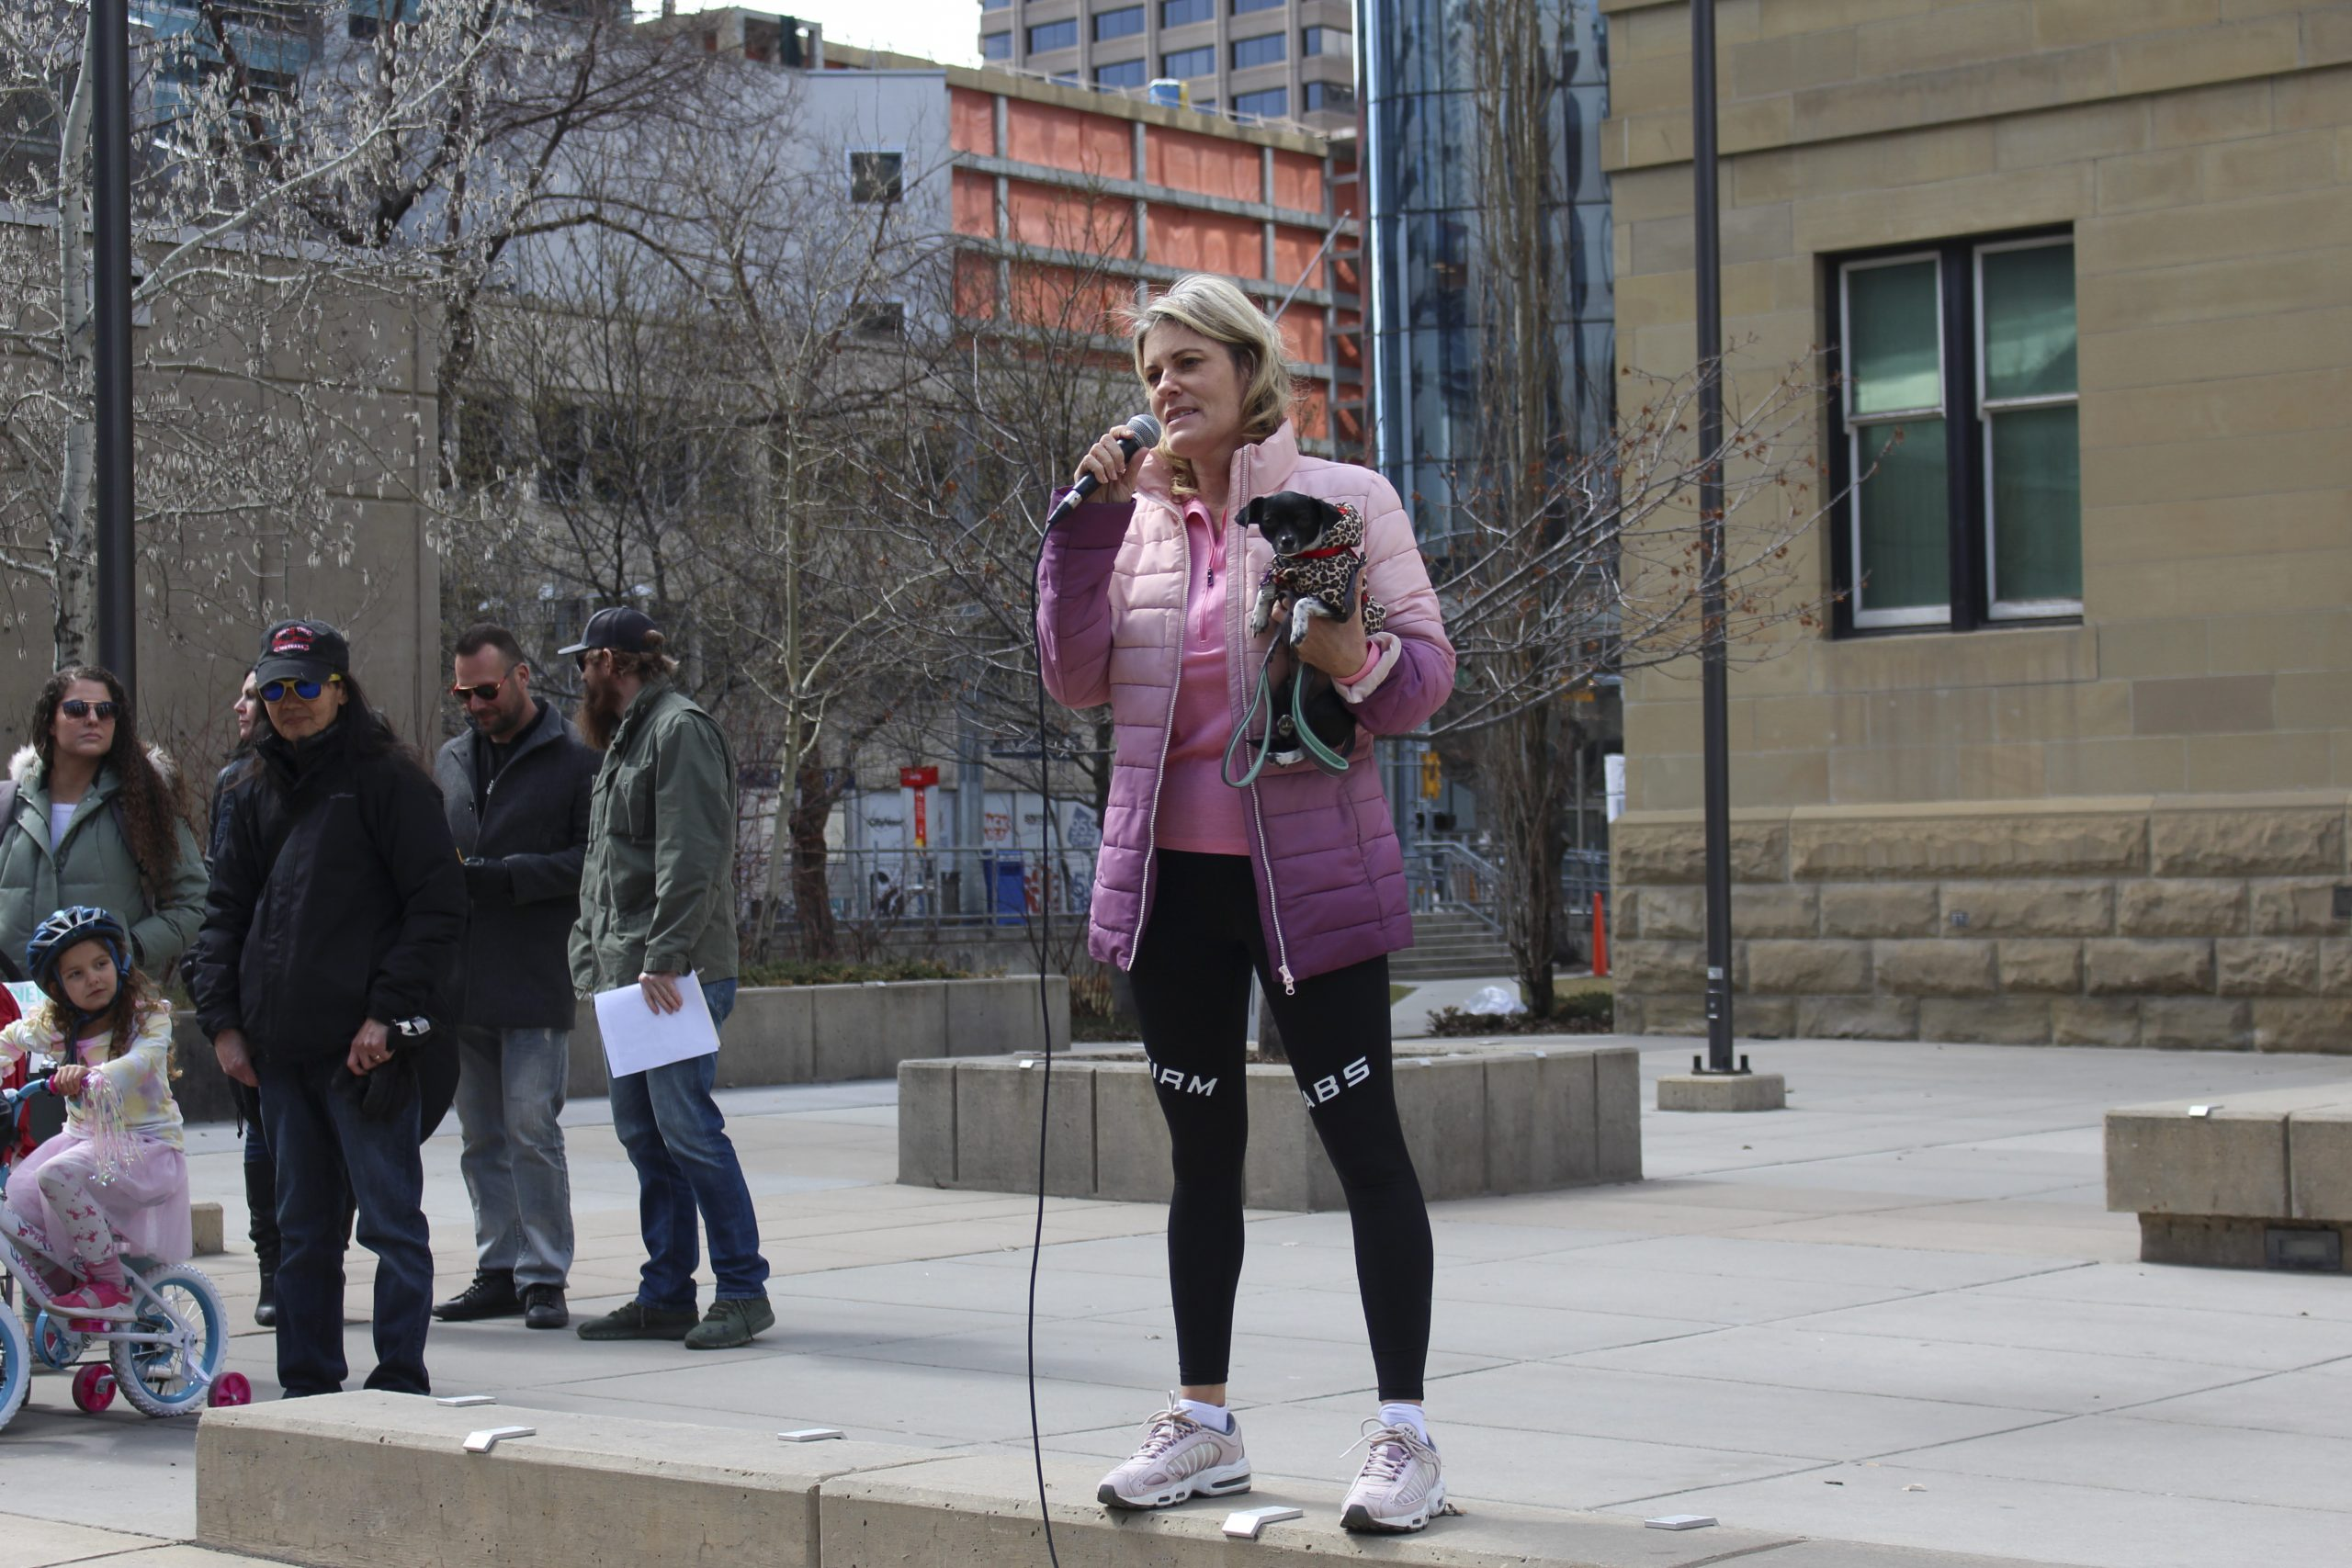 Belinda Morrison, founder of the CB Rescue Foundation, speaks to a crowd with her dog in hand at a rally that wants to save small businesses at Courthouse Park in downtown Calgary on April 11, 2021. Morrison is a self-proclaimed Master Trainer with 22 years of experience in the field. Her training business closed as a result of COVID-19, and she spoke to a crowd of a couple hundred about that struggle while citing the inhumane actions of the Alberta Government toward small businesses. Many speakers were also expressing disdain for mask usage, vaccines, the COVID-19 testing method, and compliance with the government and the enforcement of said closures. (Photo by Alejandro Melgar/SAIT)